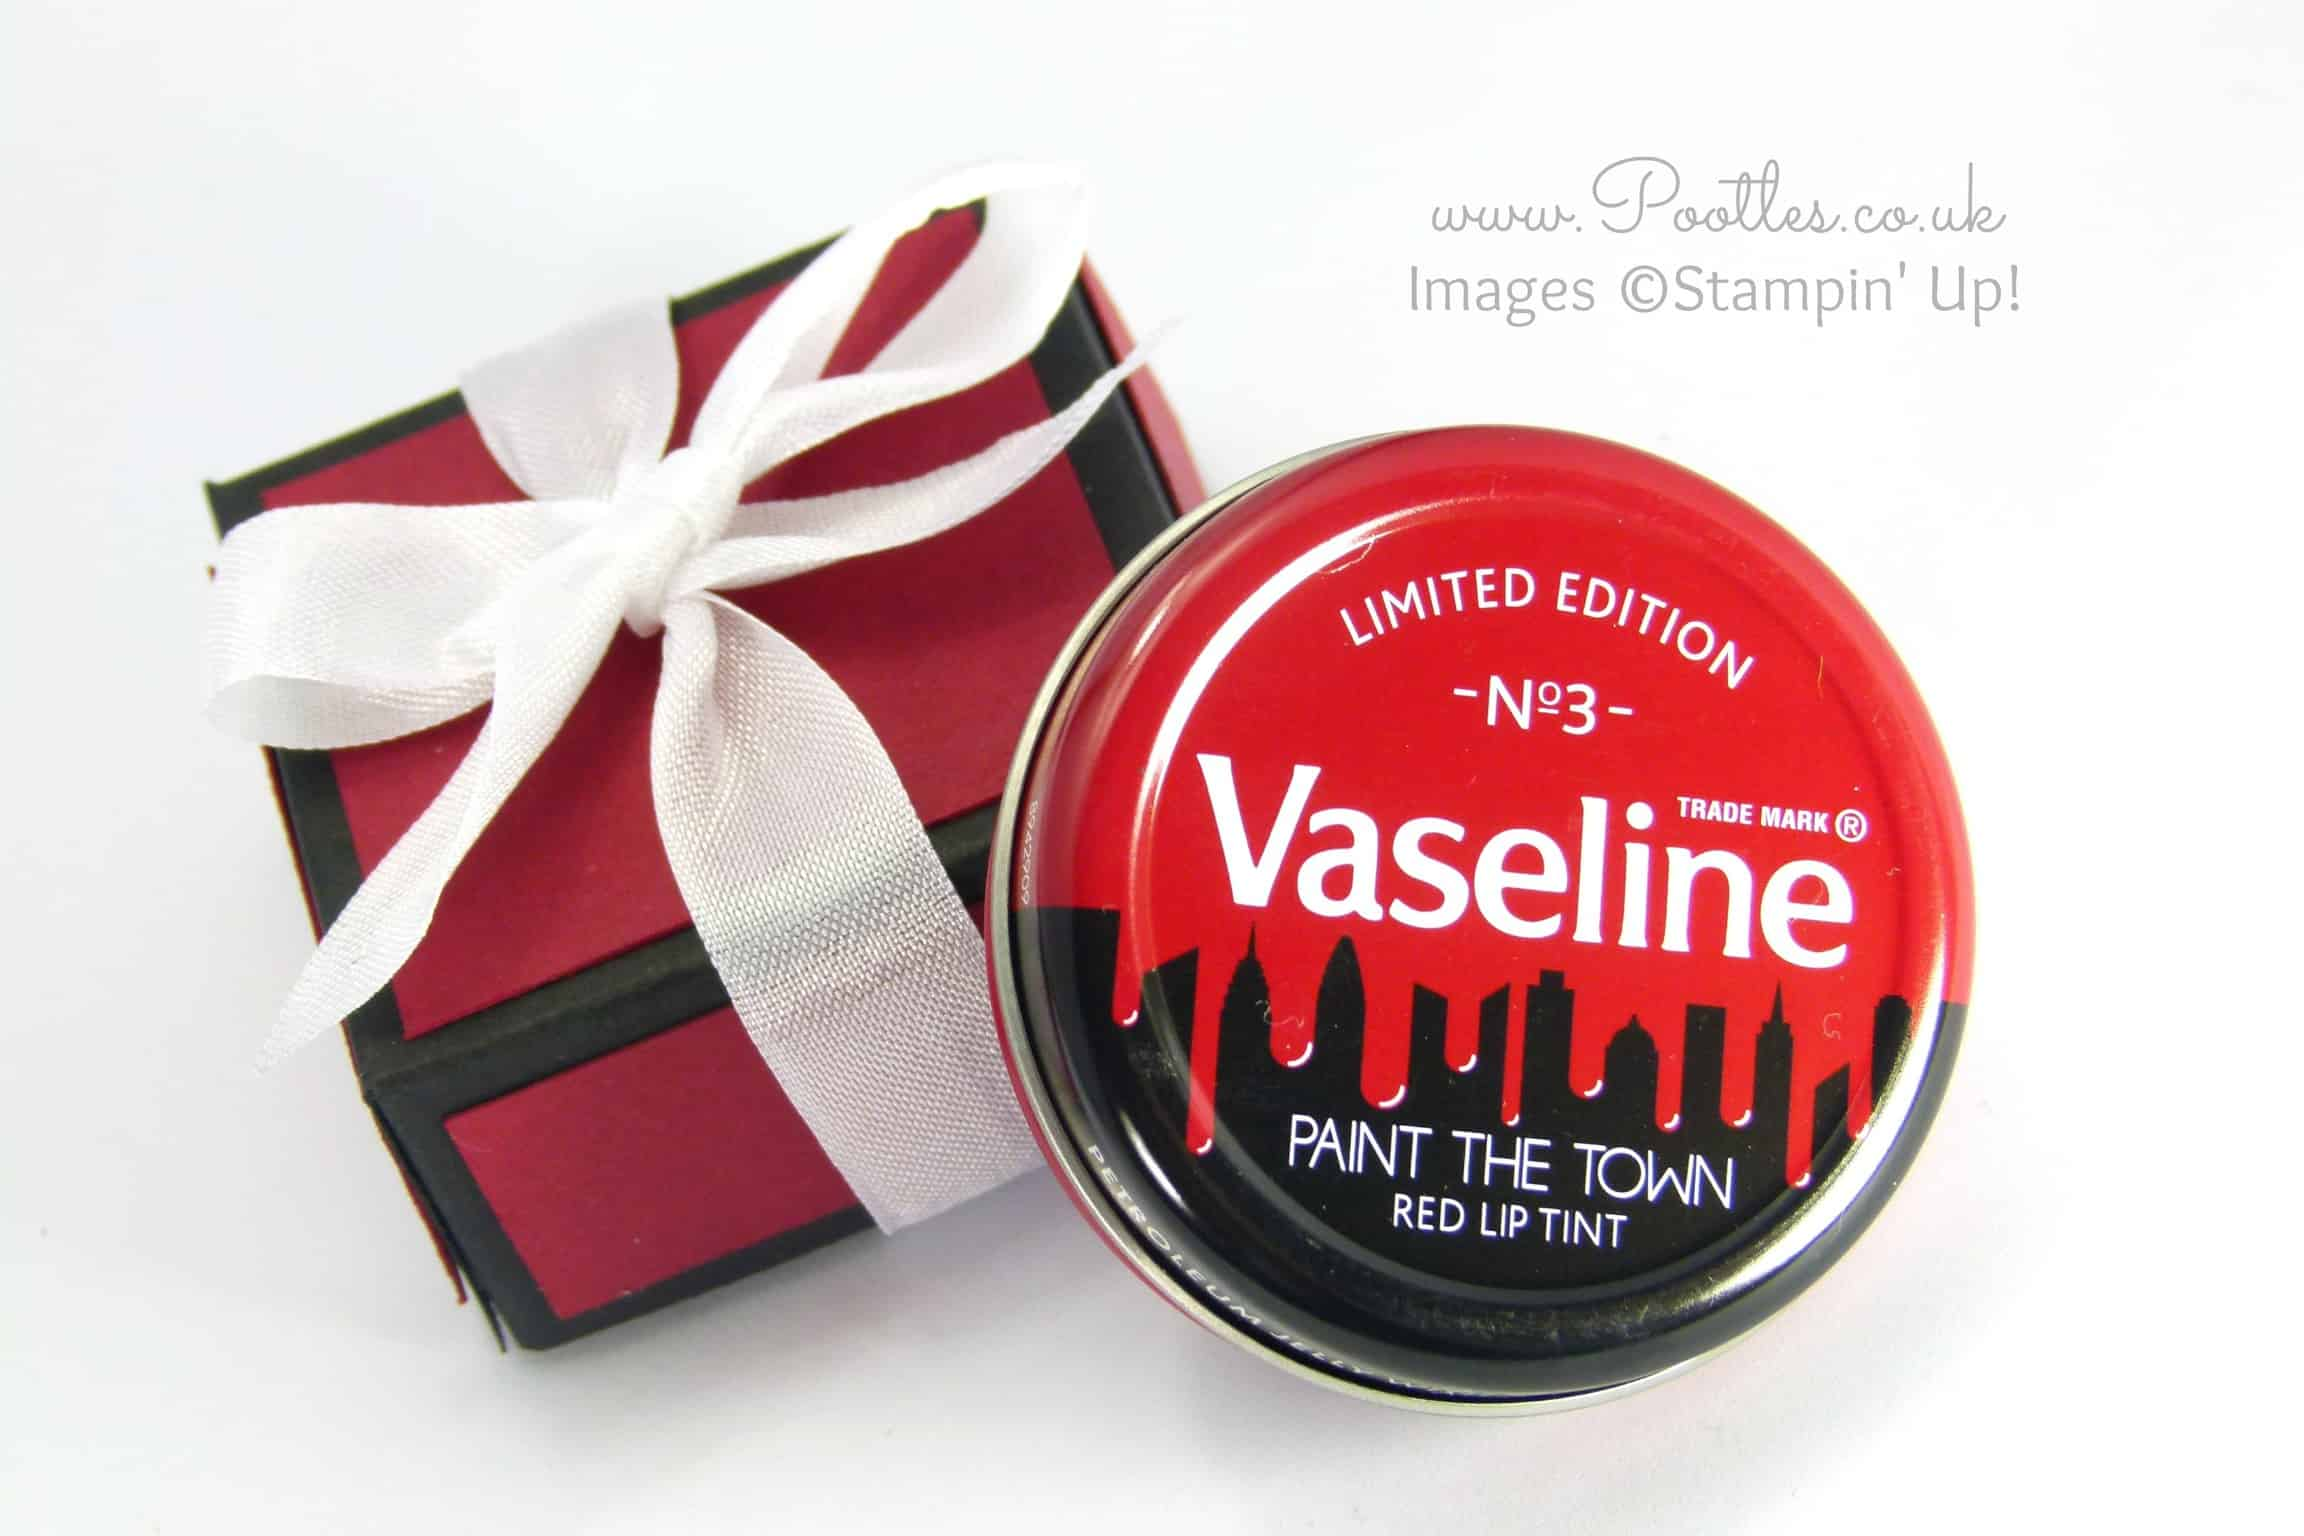 Vaseline Gift Box Tutorial using Stampin' Up! Colours Cherry Cobbler